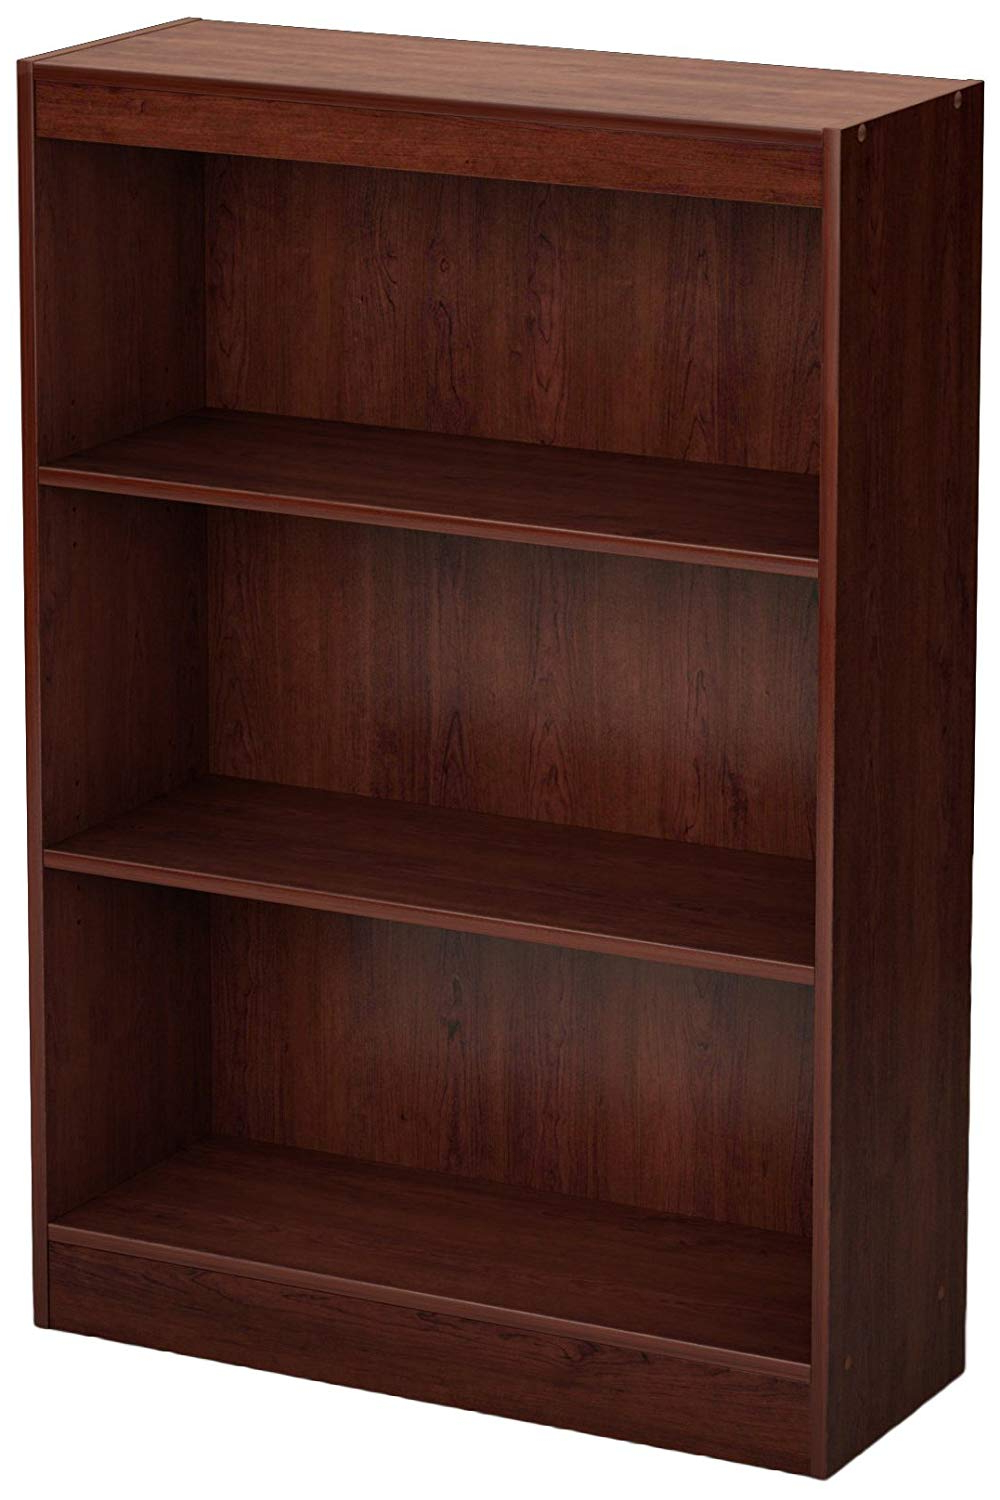 Axess Standard Bookcases Intended For Most Recent South Shore 3 Shelf Storage Bookcase, Royal Cherry (View 14 of 20)